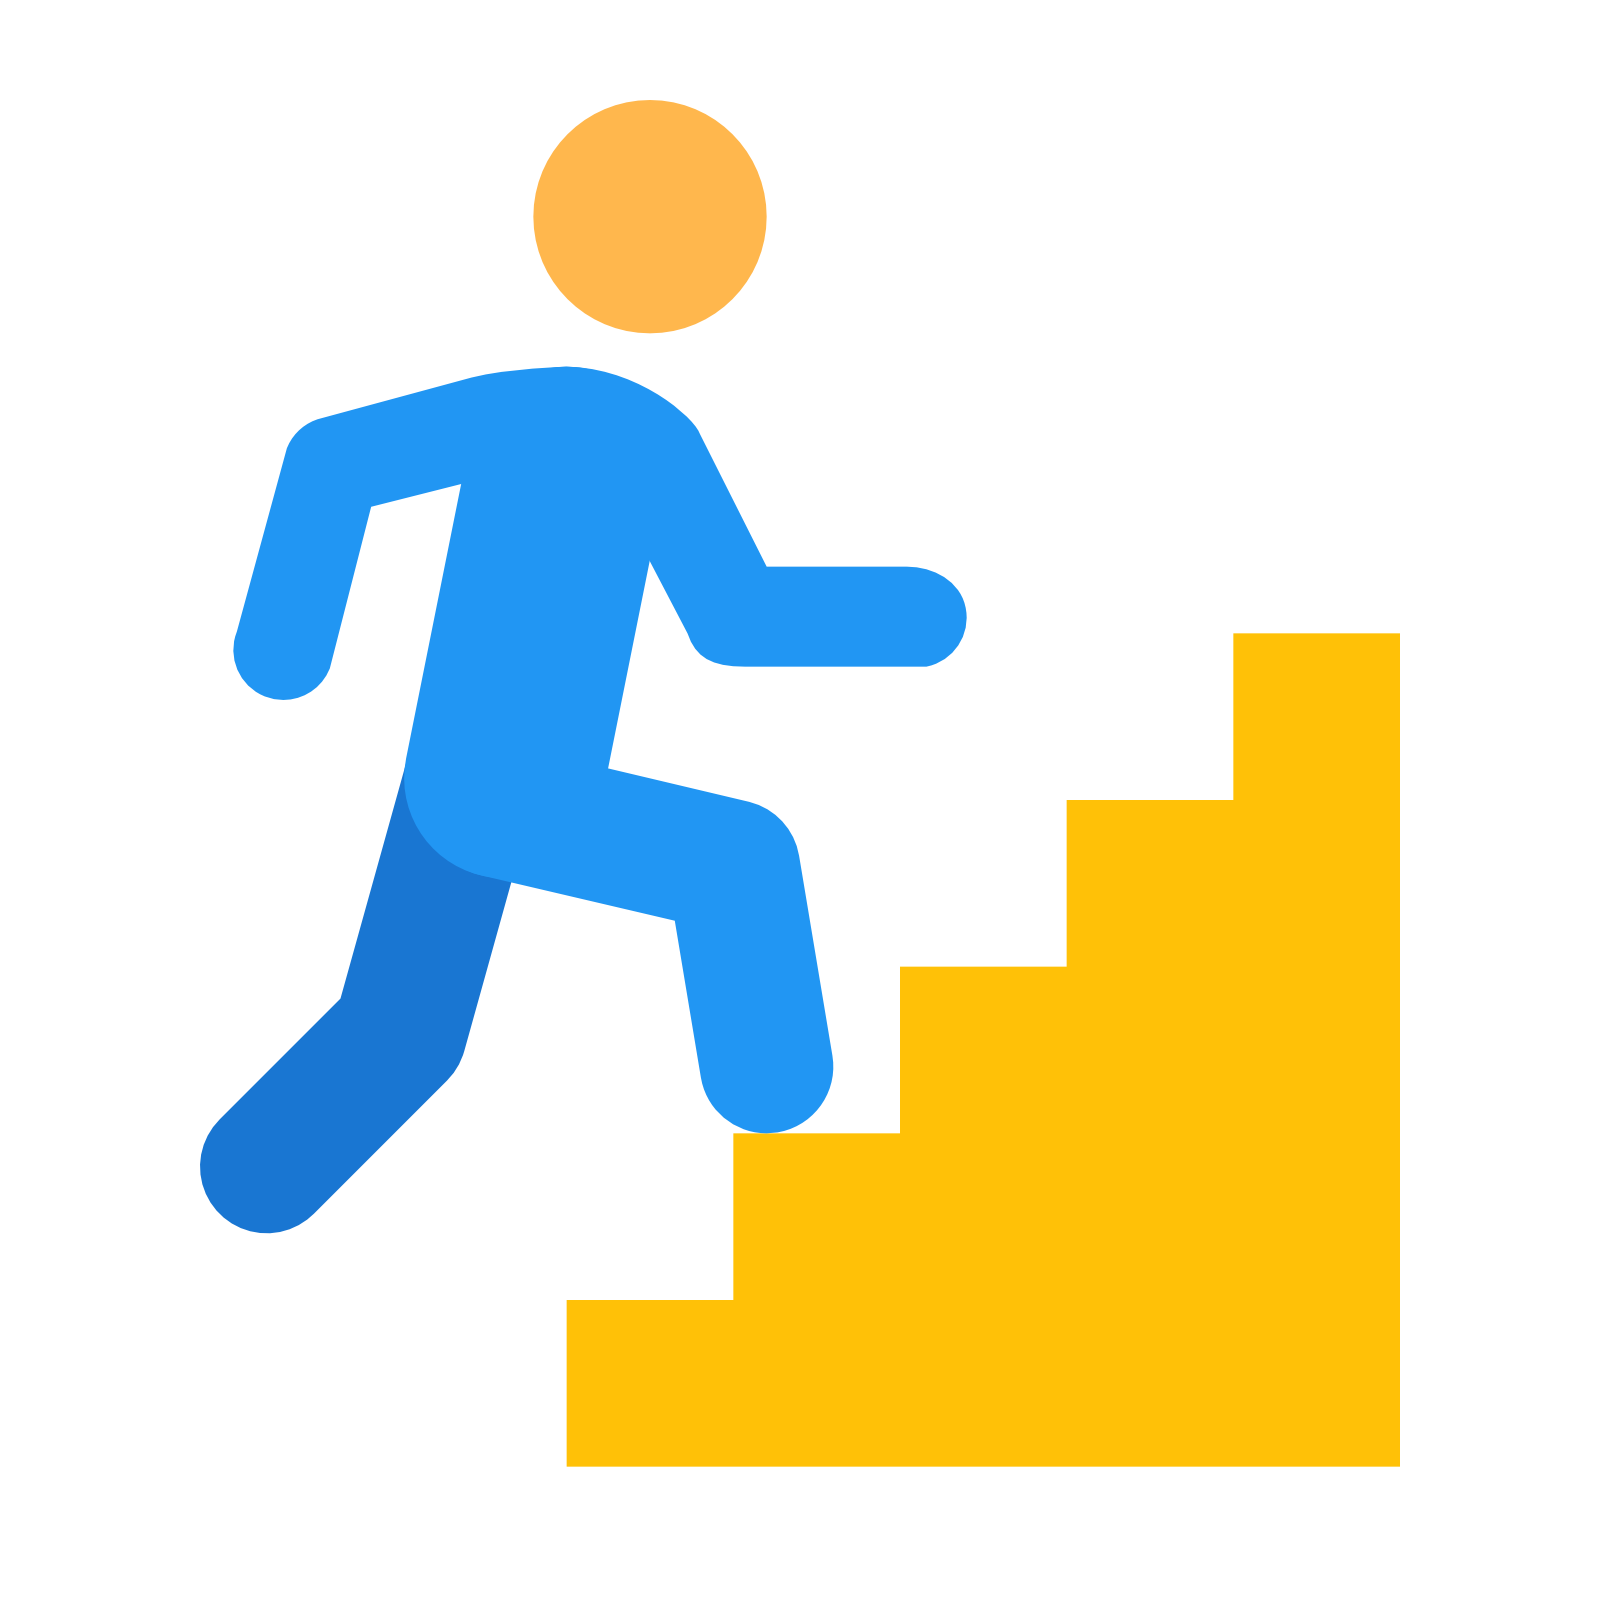 best stairs icon. Staircase clipart round stair